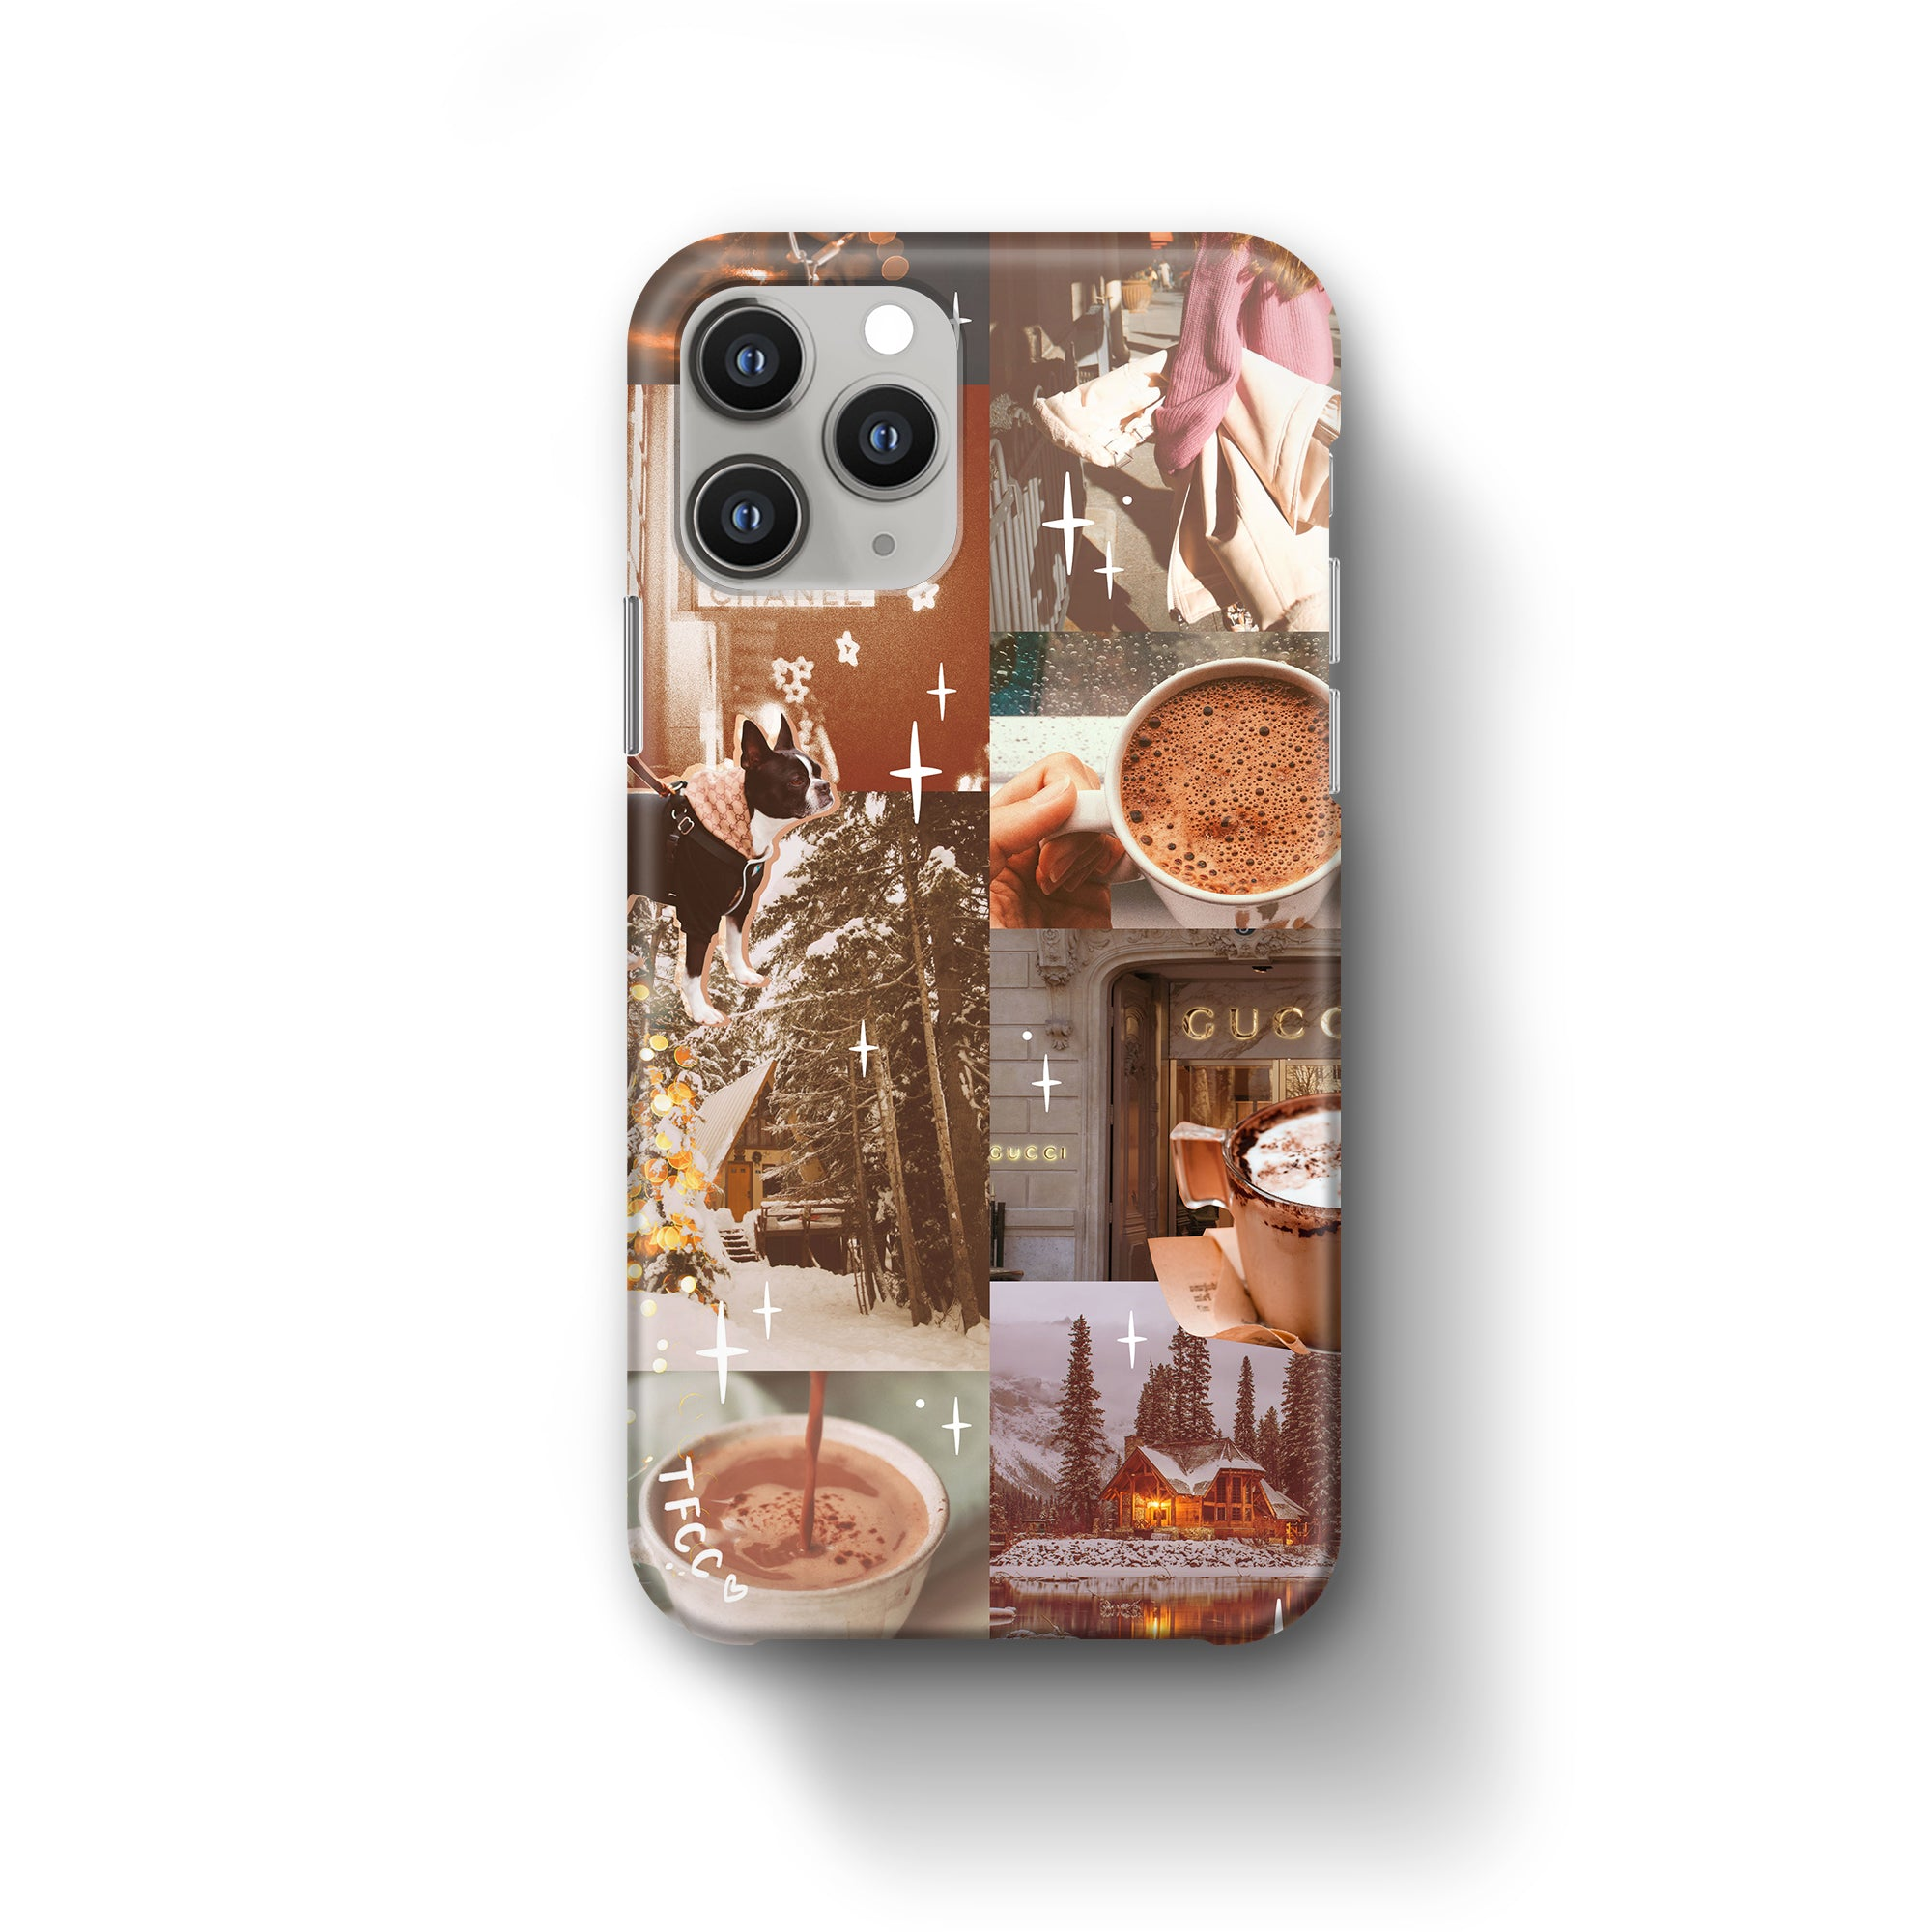 WONDERLAND CASE - thefonecasecompany